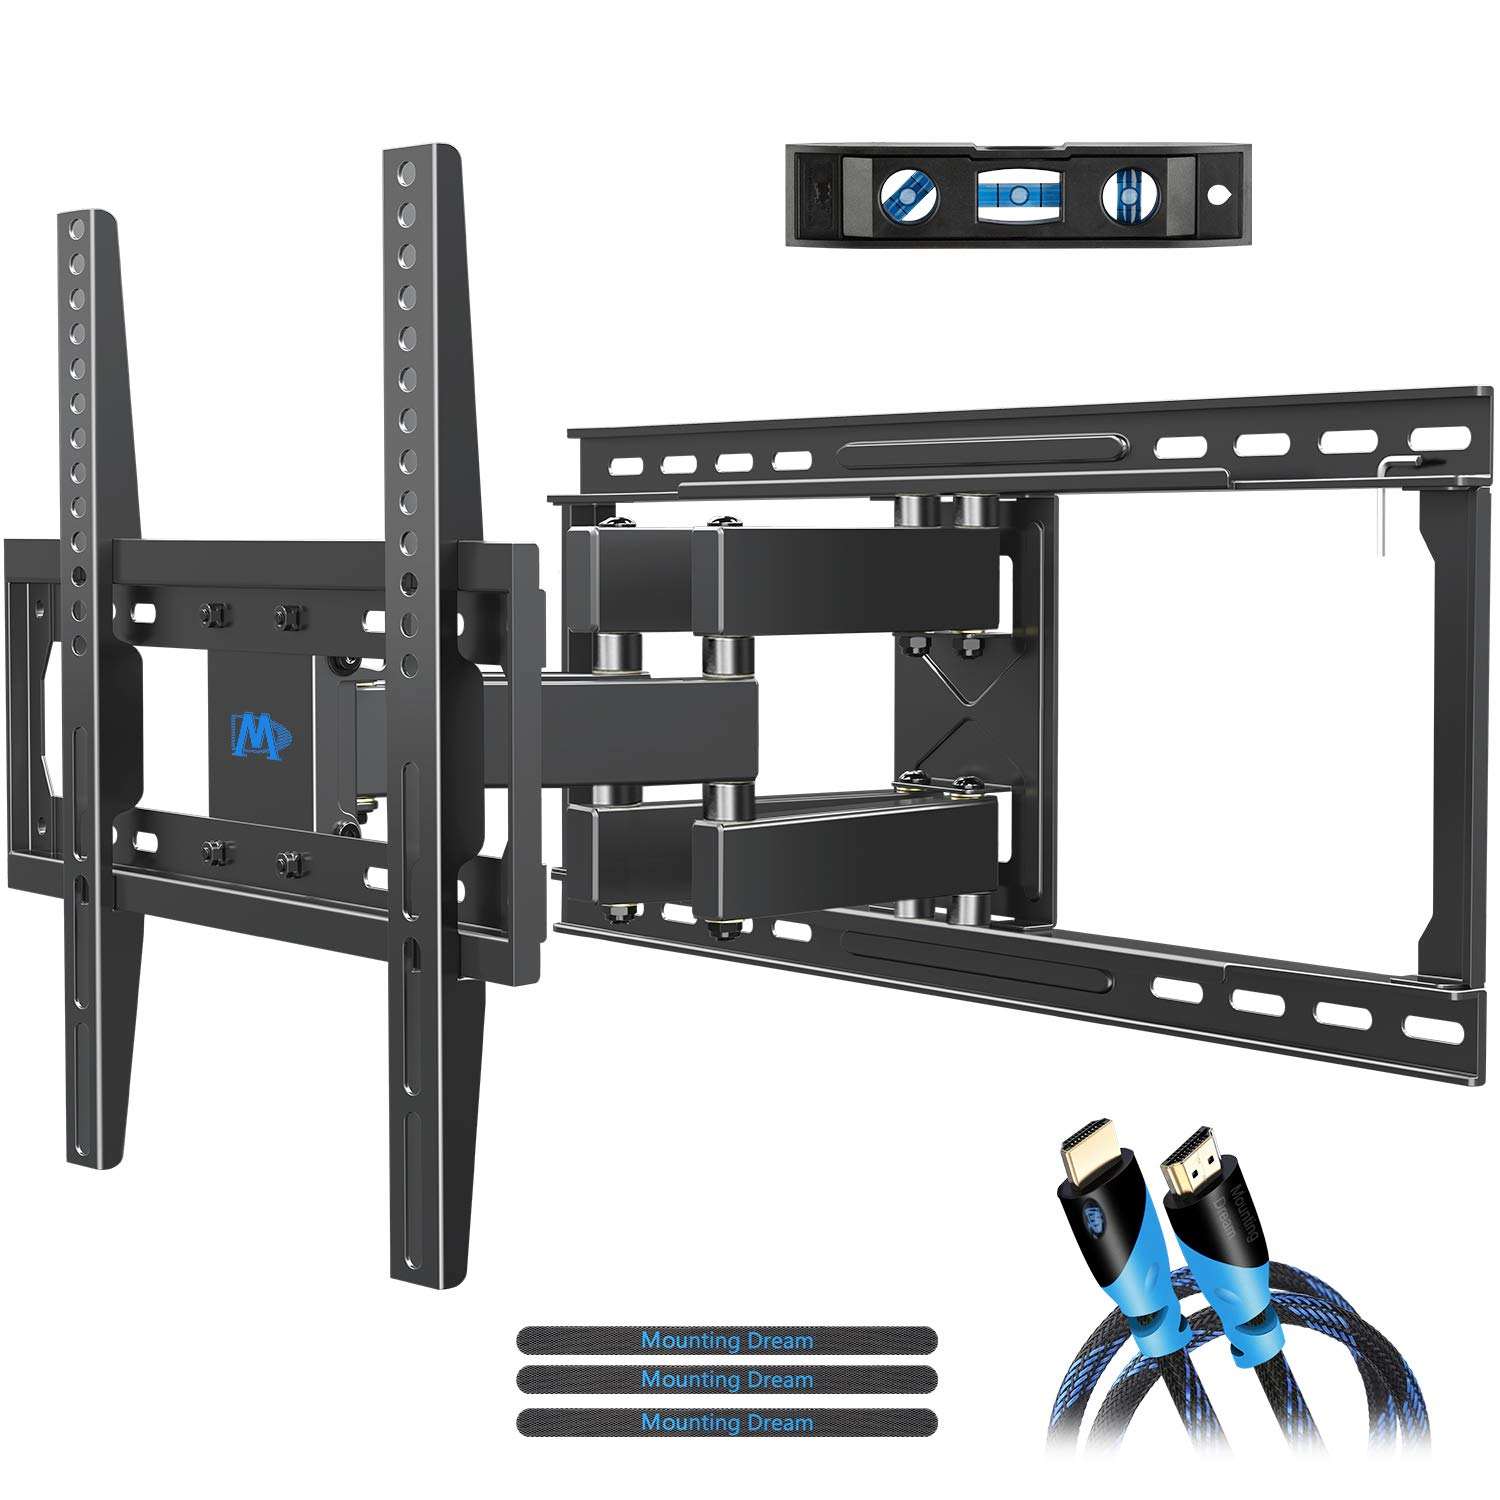 Mounting Dream TV Mount Full Motion TV Wall Mounts for 26-55'', Some up to 65'' LED, LCD Flat Screen TV, Wall Mount Bracket up to VESA 400 x 400mm 99 lbs. Fits 16'', 18'', 24'' Wood Studs MD2380-24 by Mounting Dream